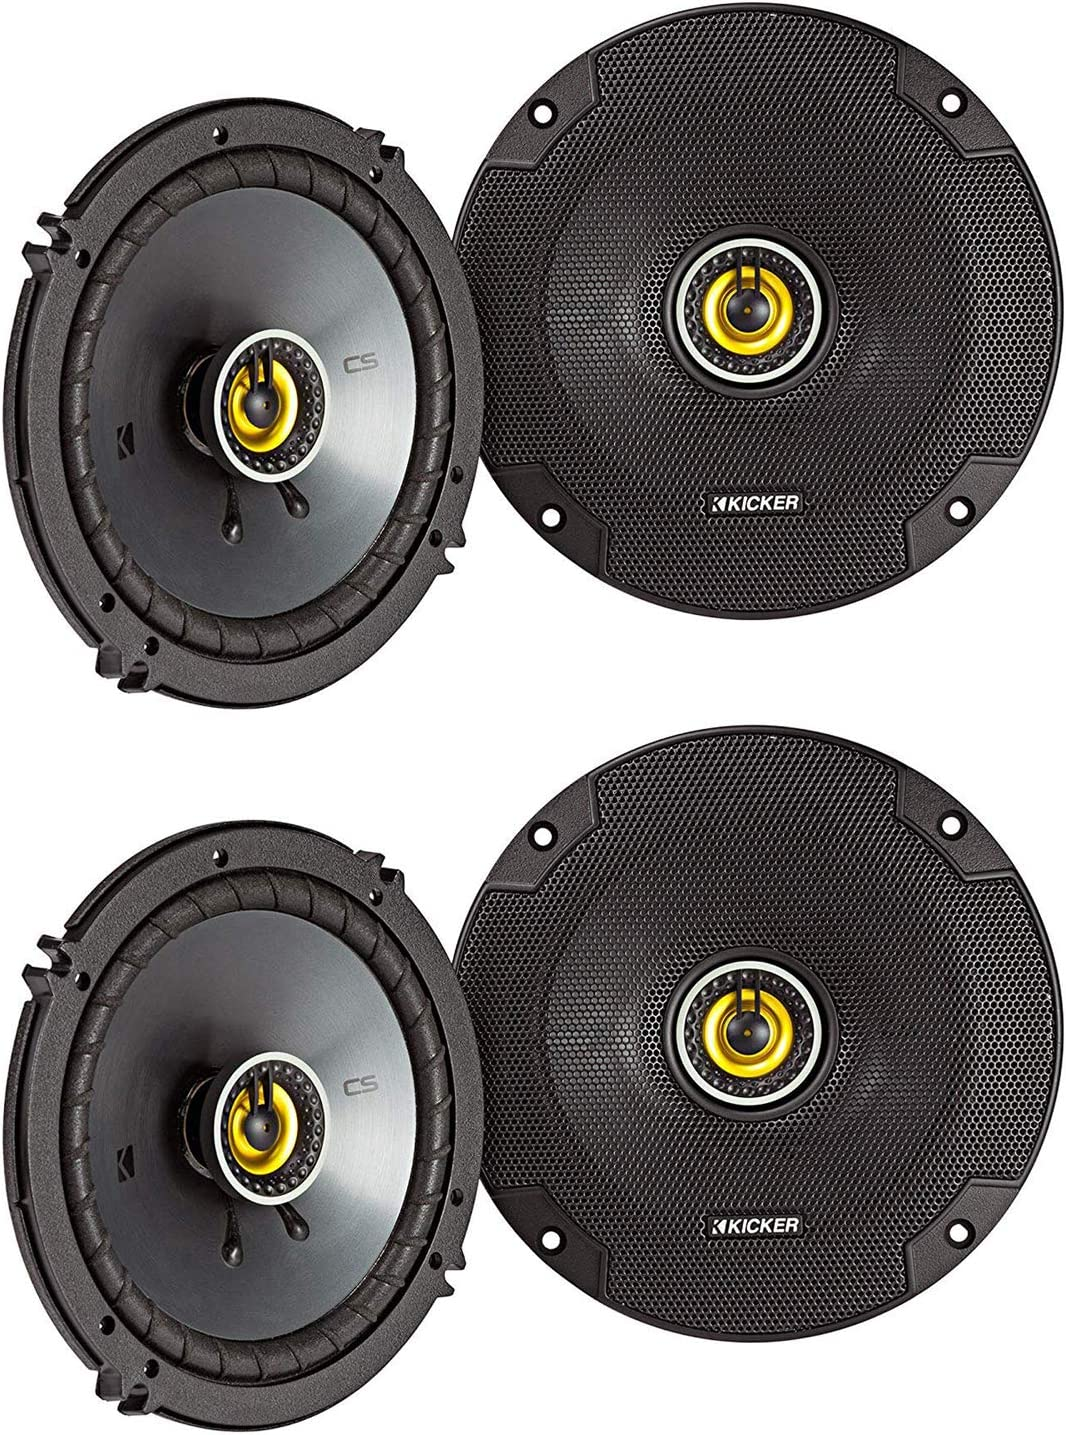 KICKER CS Series CSC65 6.5 Inch Car Audio Speaker with Woofers, Black & Yellow (4 Pack)